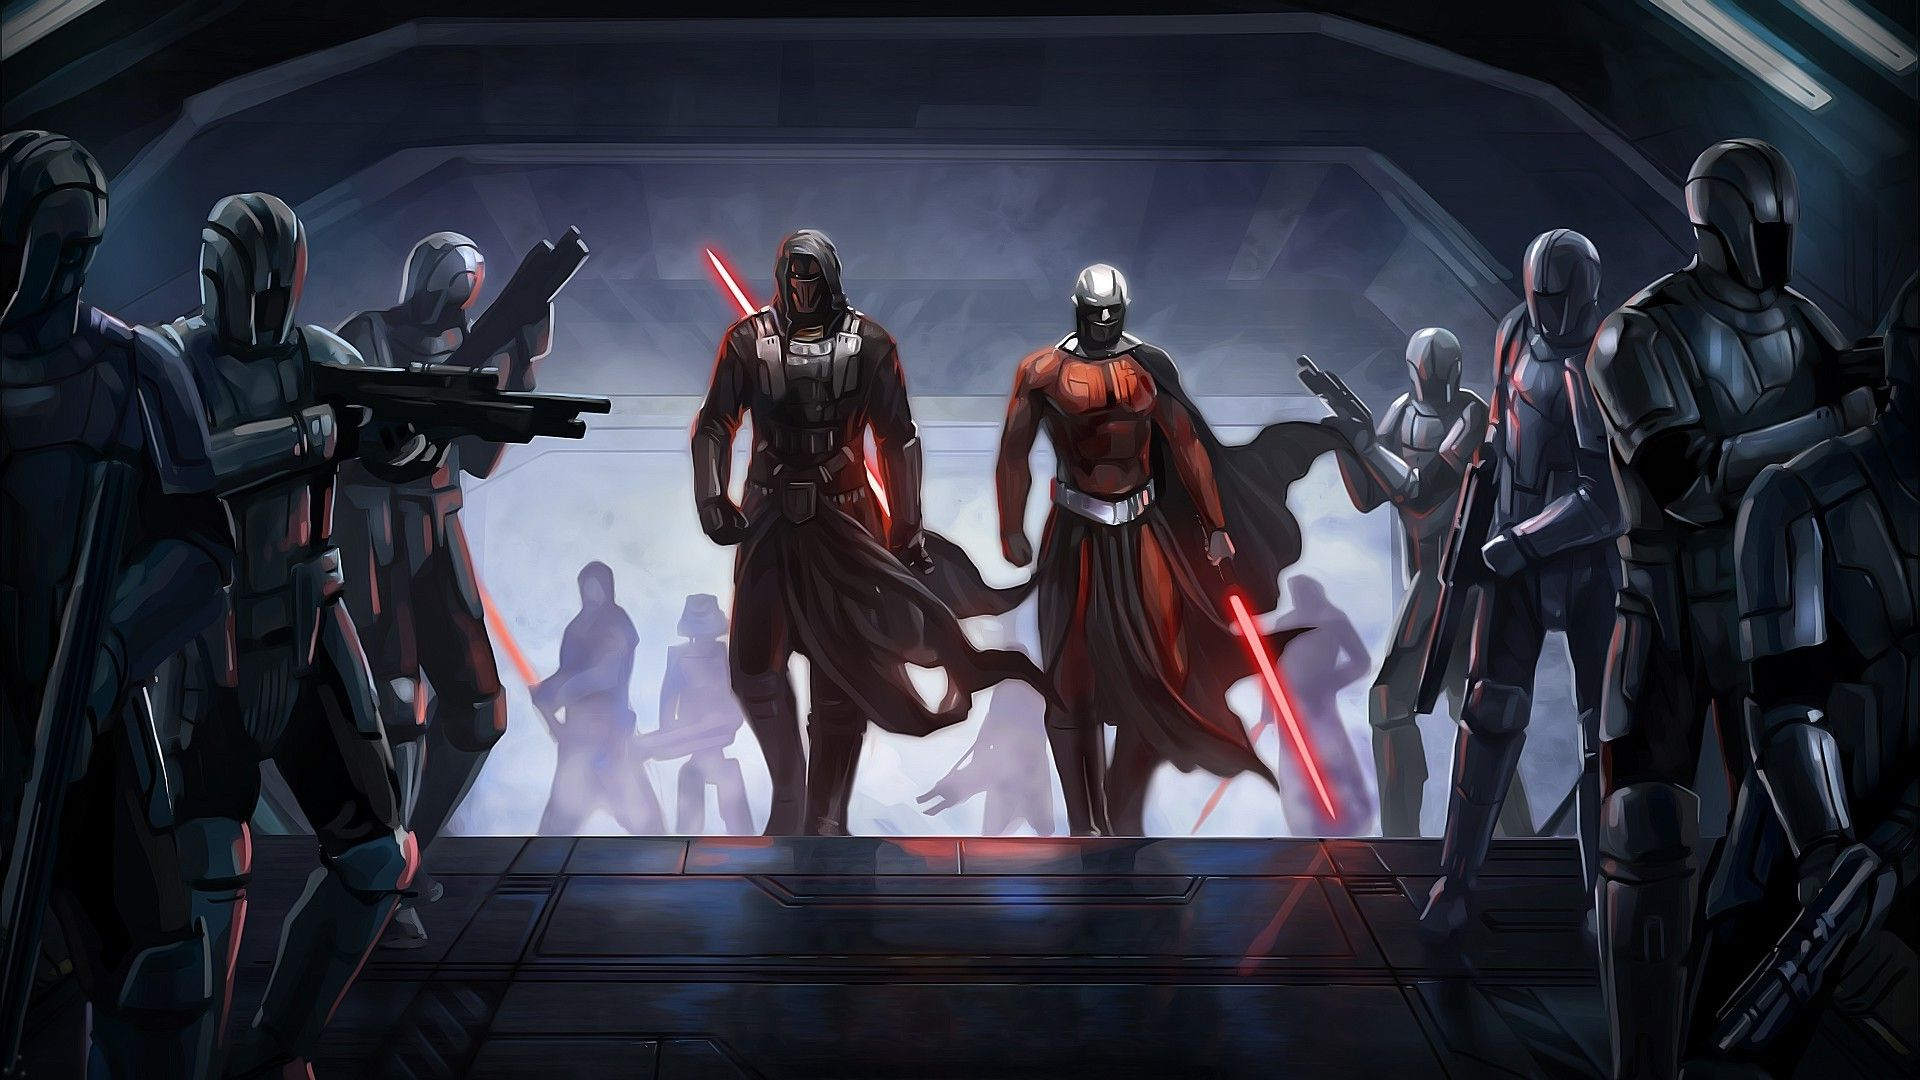 Star Wars Knights Of The Old Republic Wallpapers Top Free Star